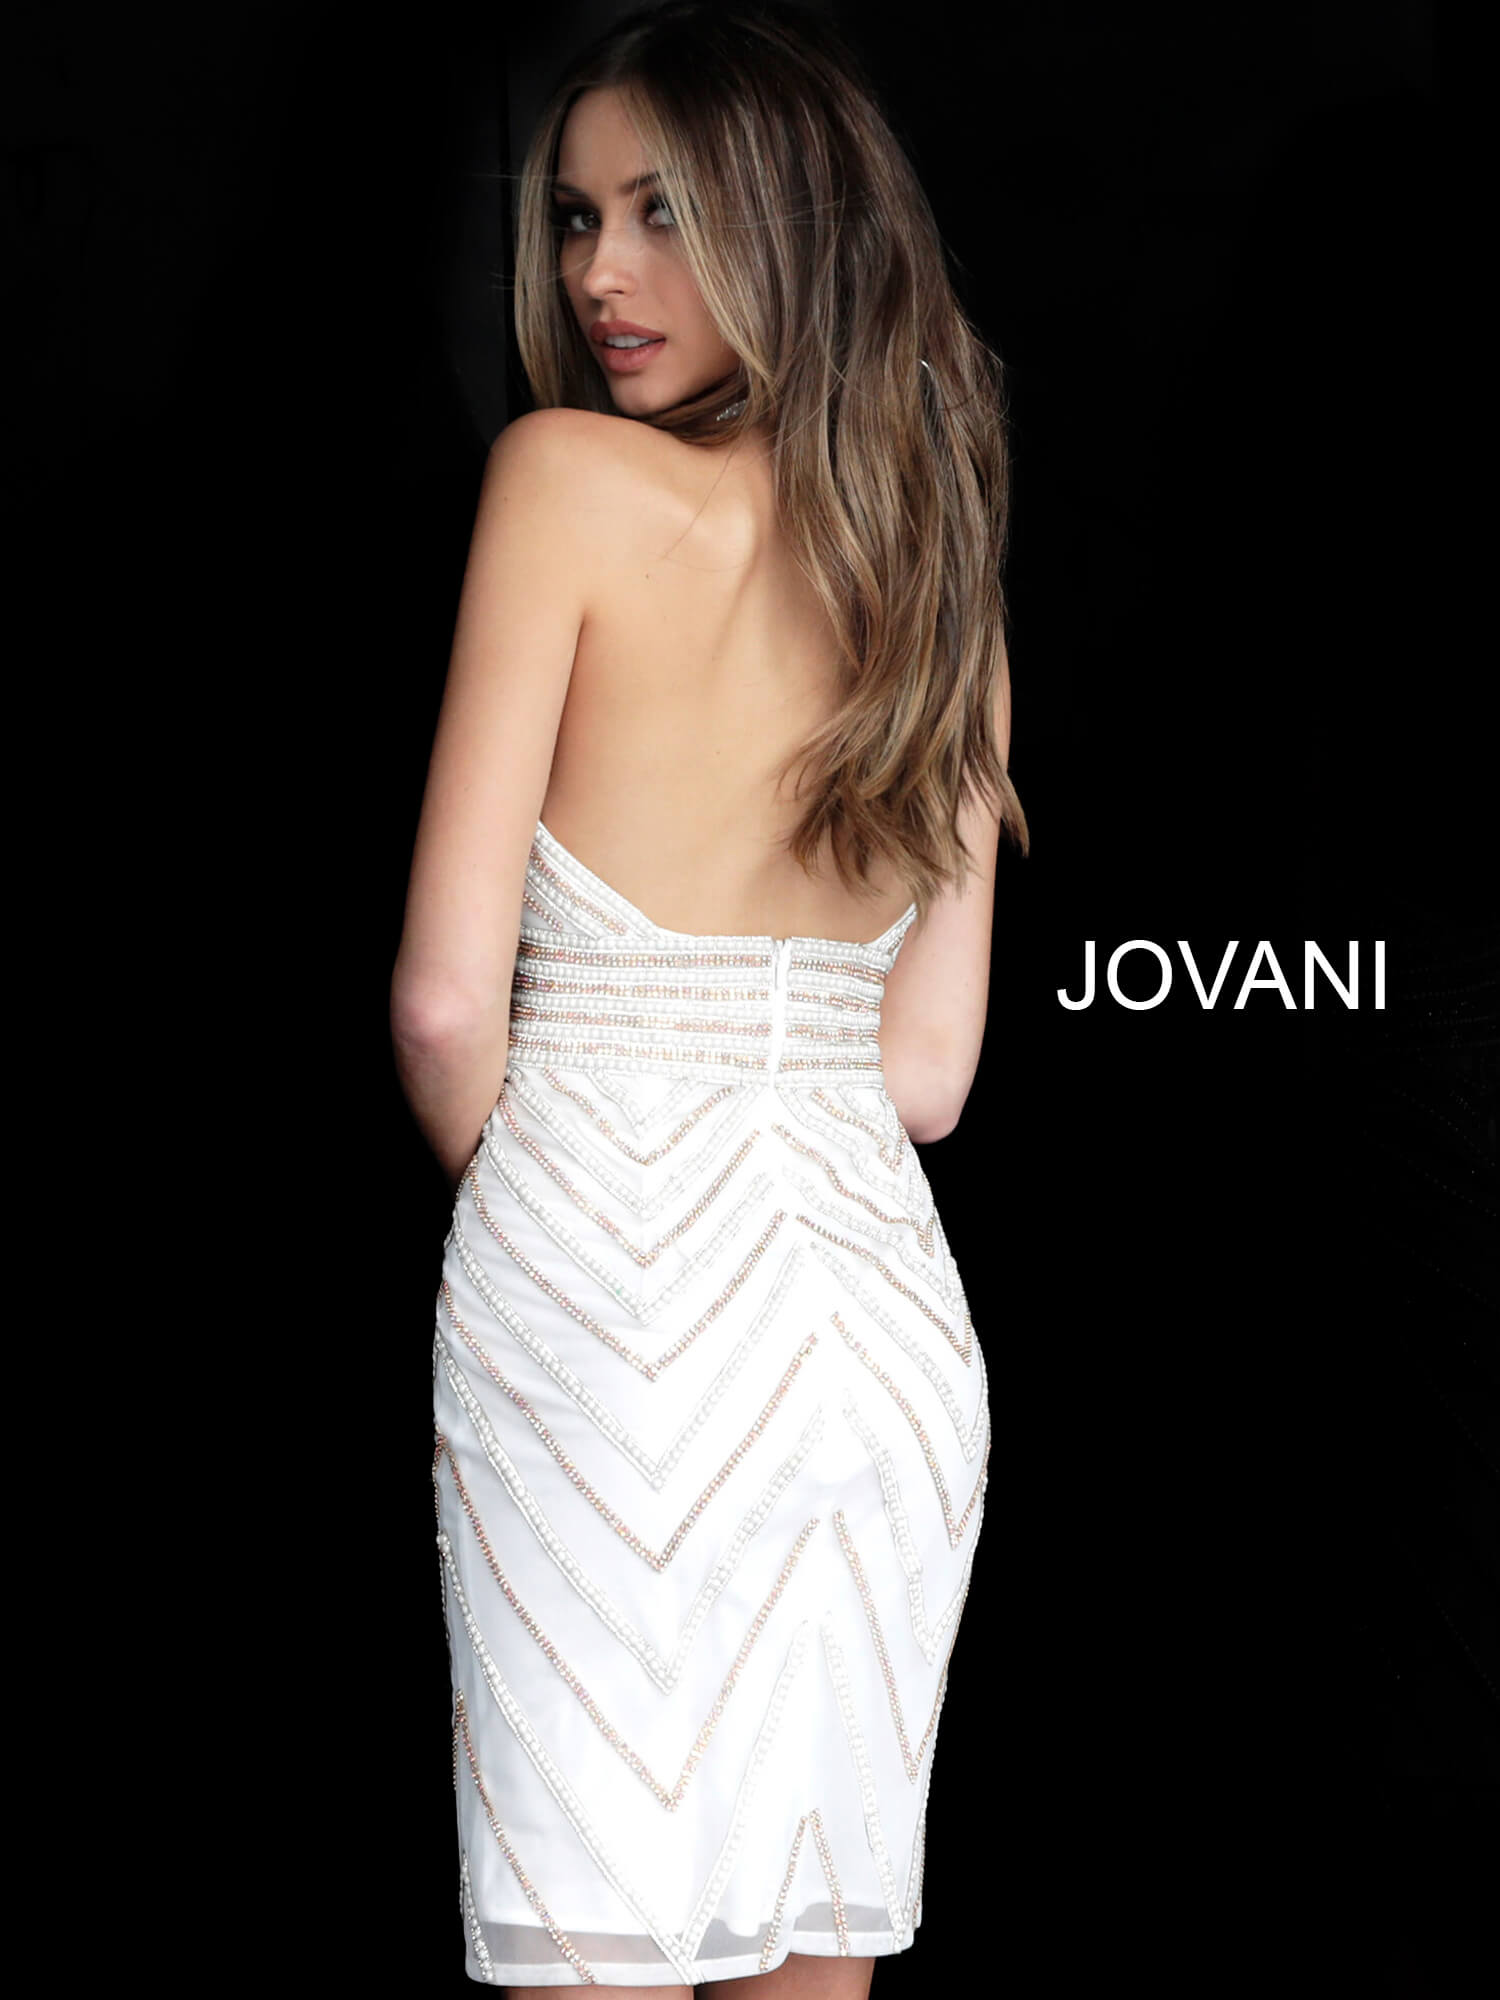 Jovani 2270 Halter Neck Embellished Cocktail Dress  on mobile 3